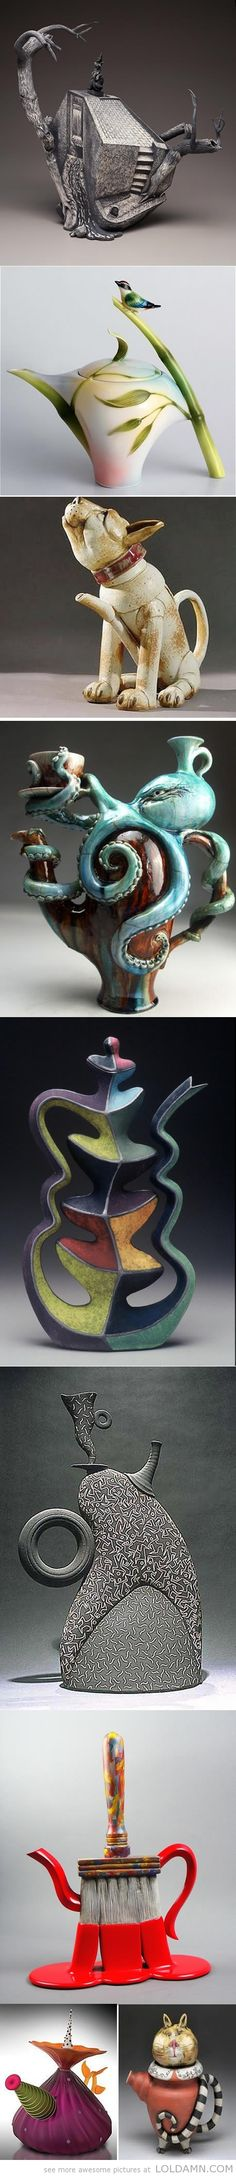 Some cool and unusual teapots